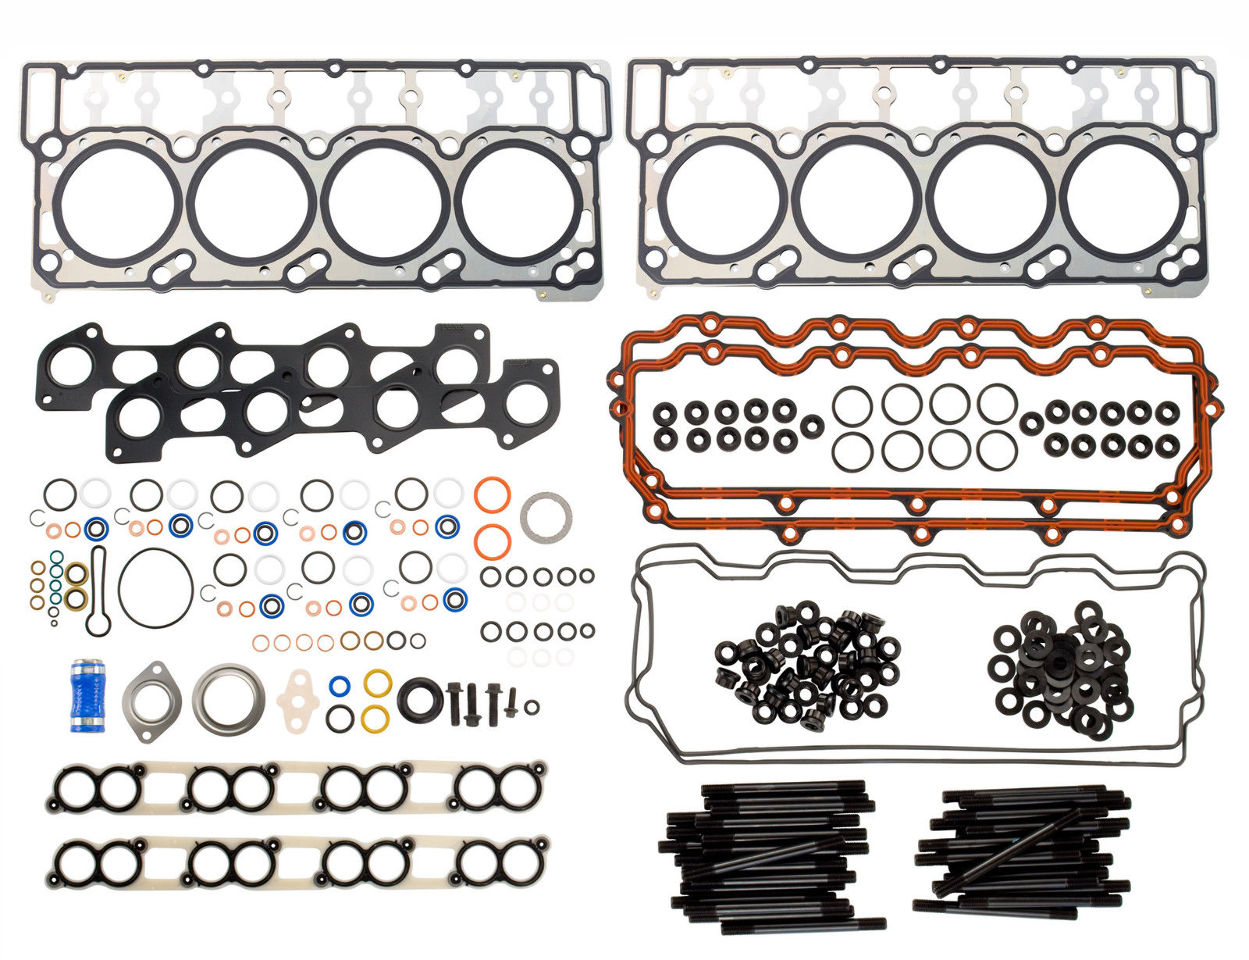 2004 Ford F 350 Head Gasket Replacement   Autos Post